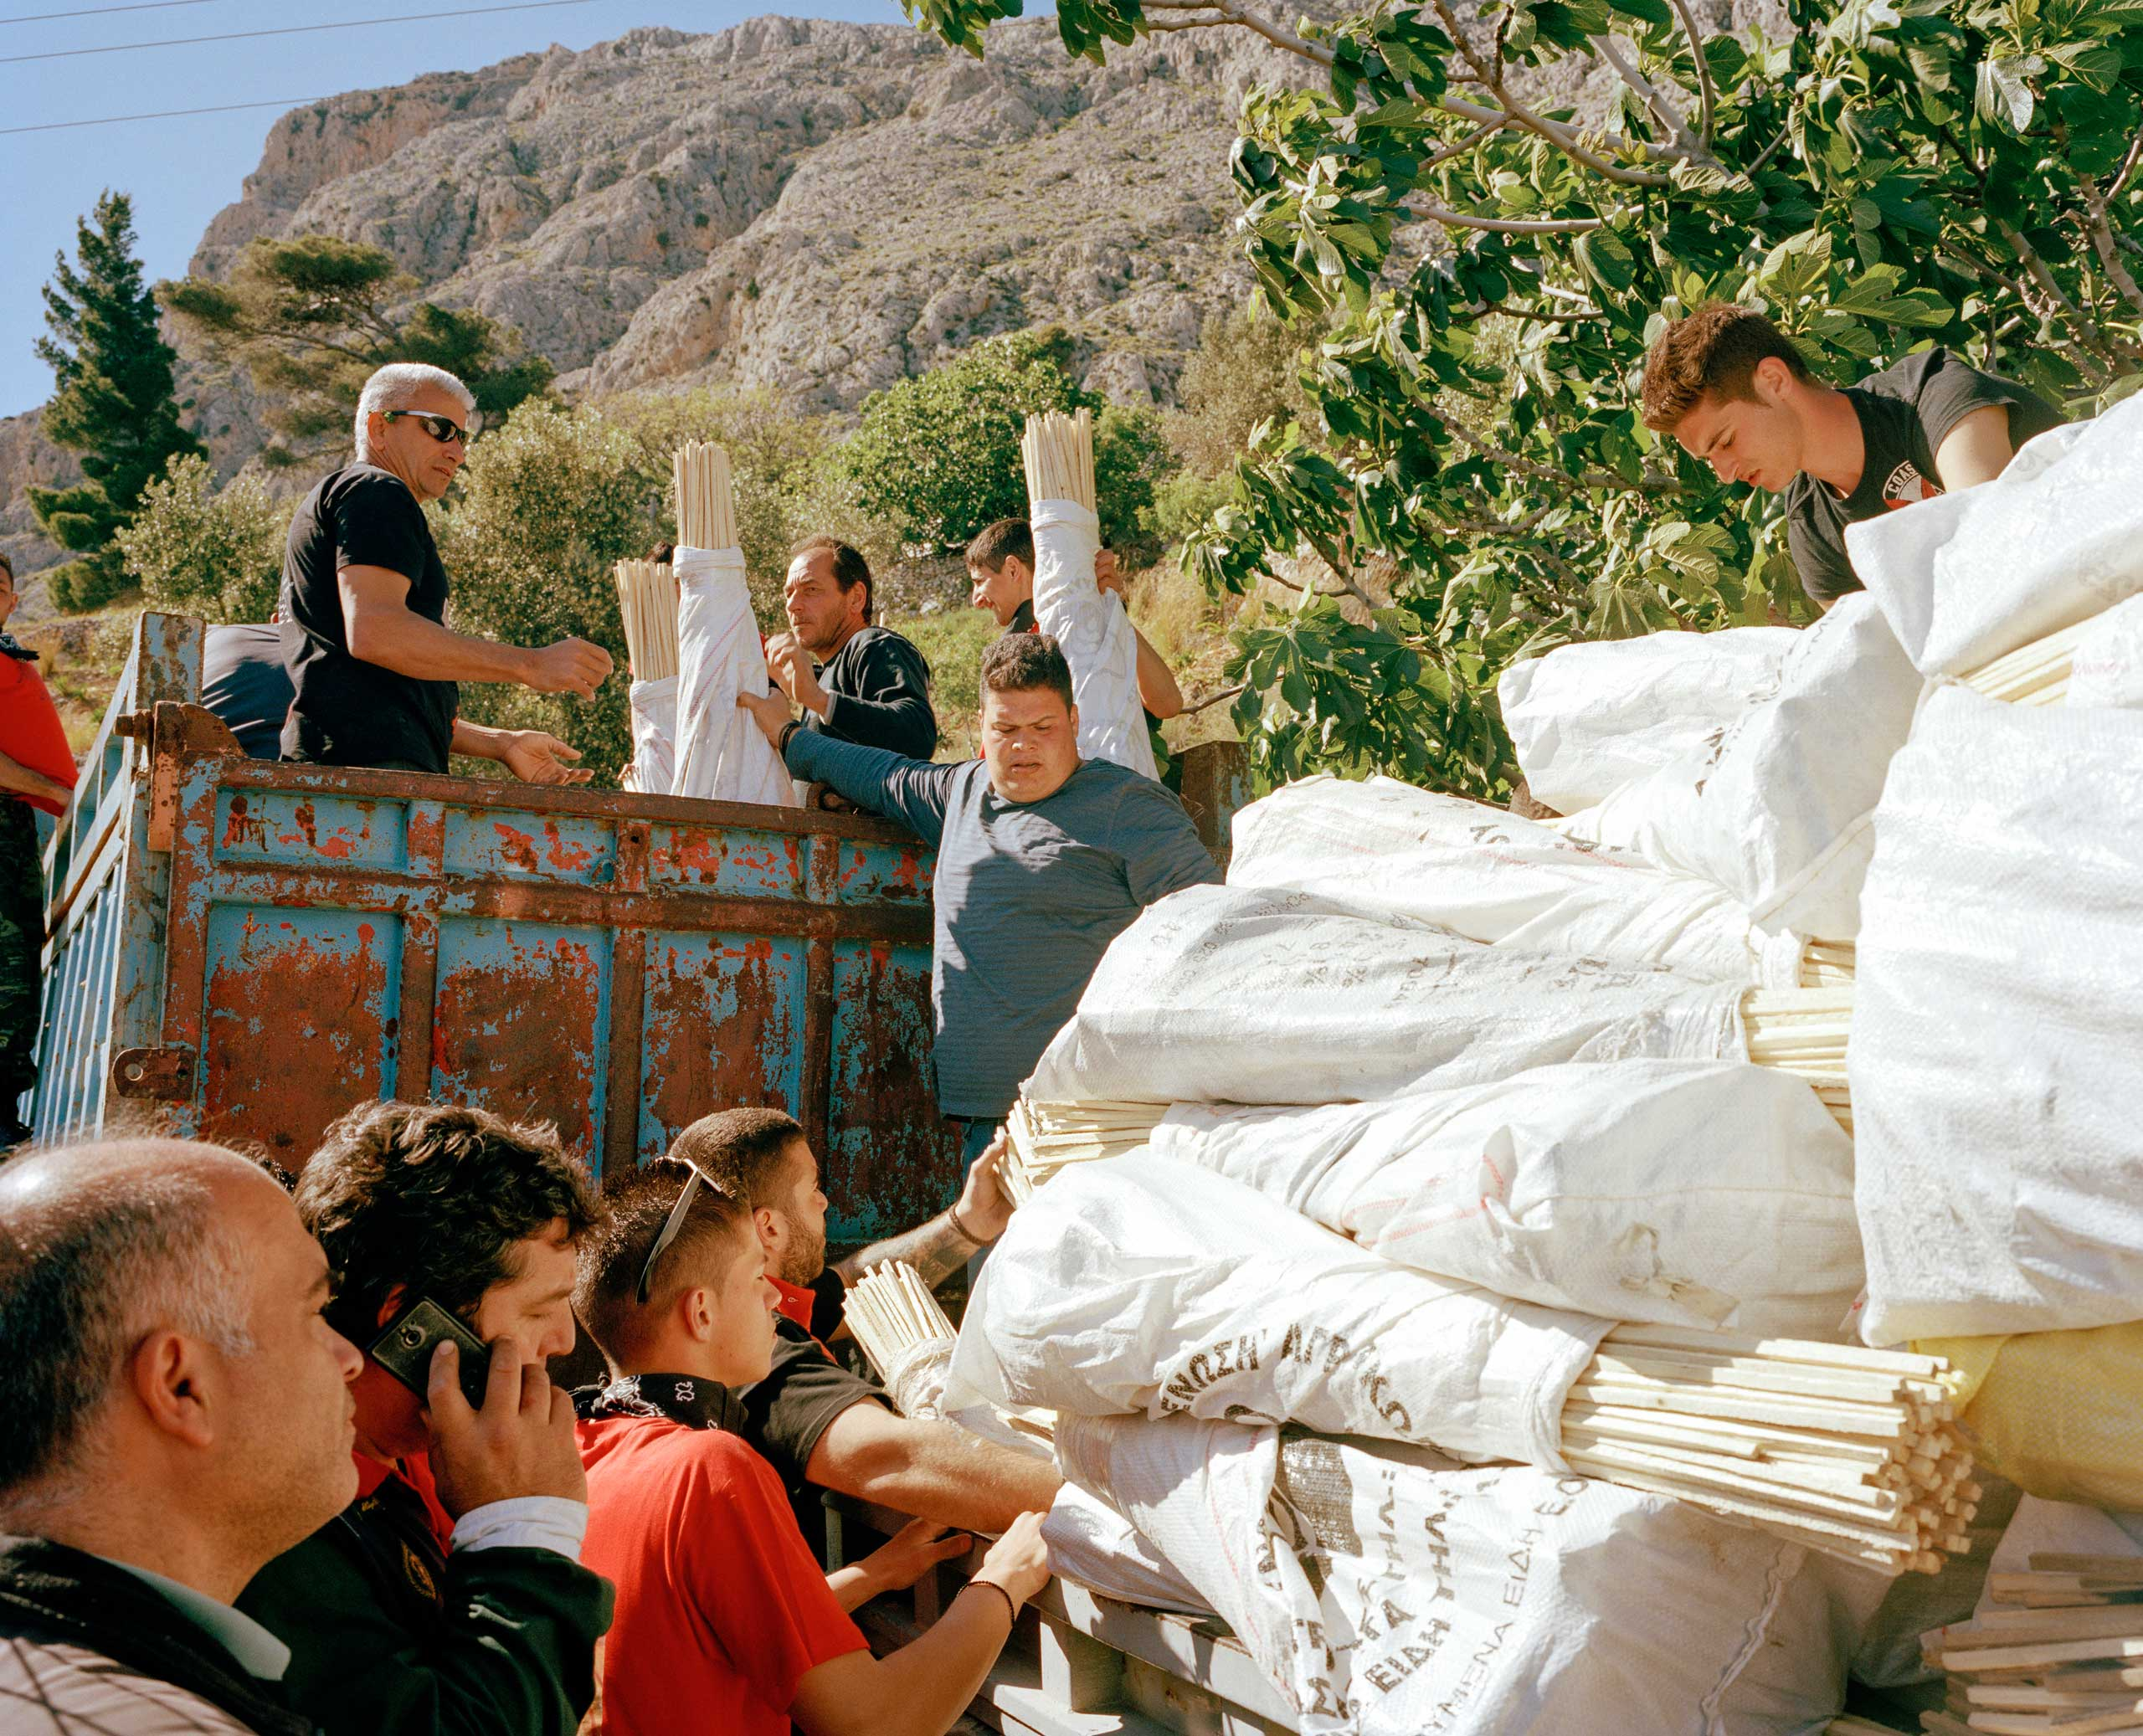 Team Aeolos load 27,500 rockets on a lorry from their hidden storehouse in the mountains.